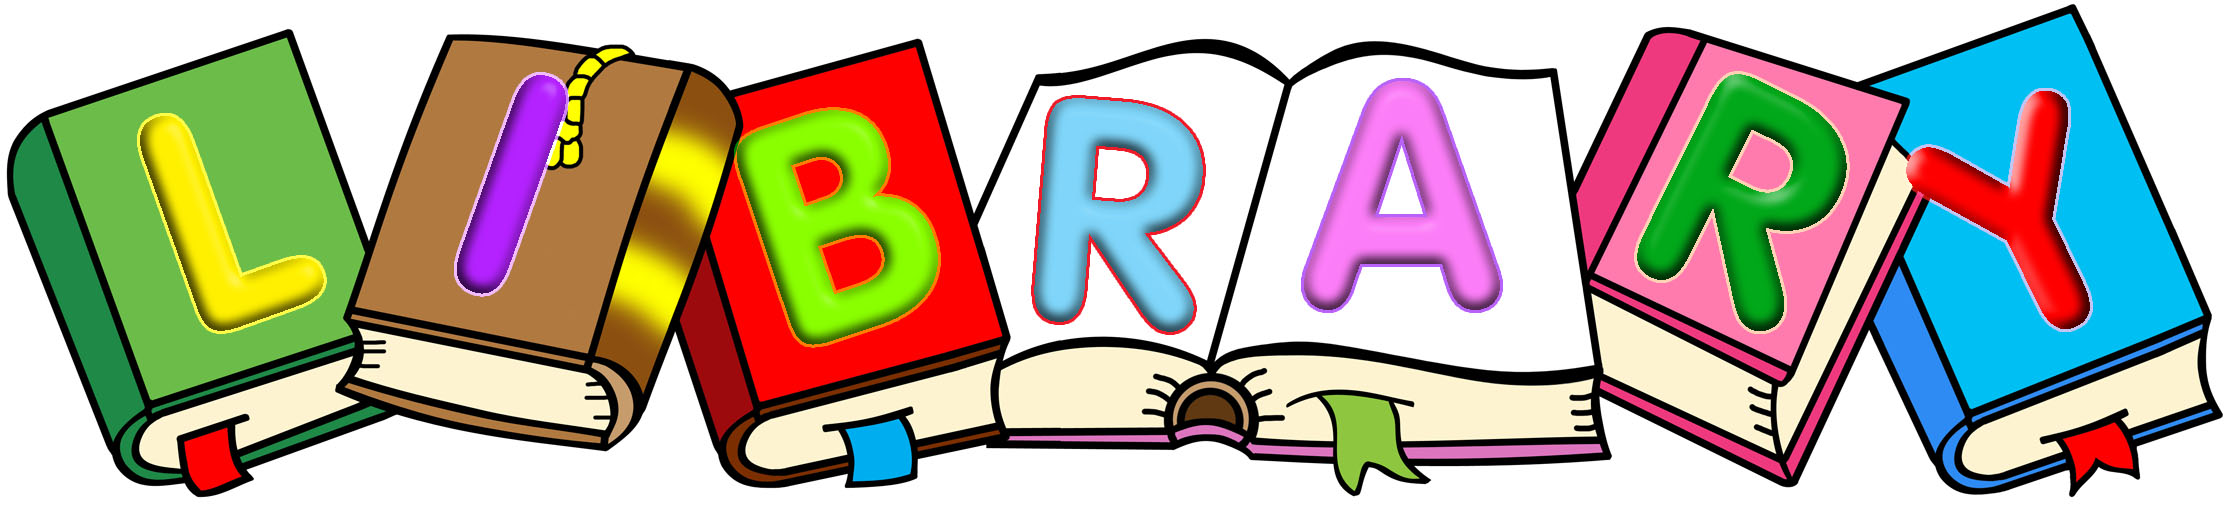 Library clipart #20, Download drawings